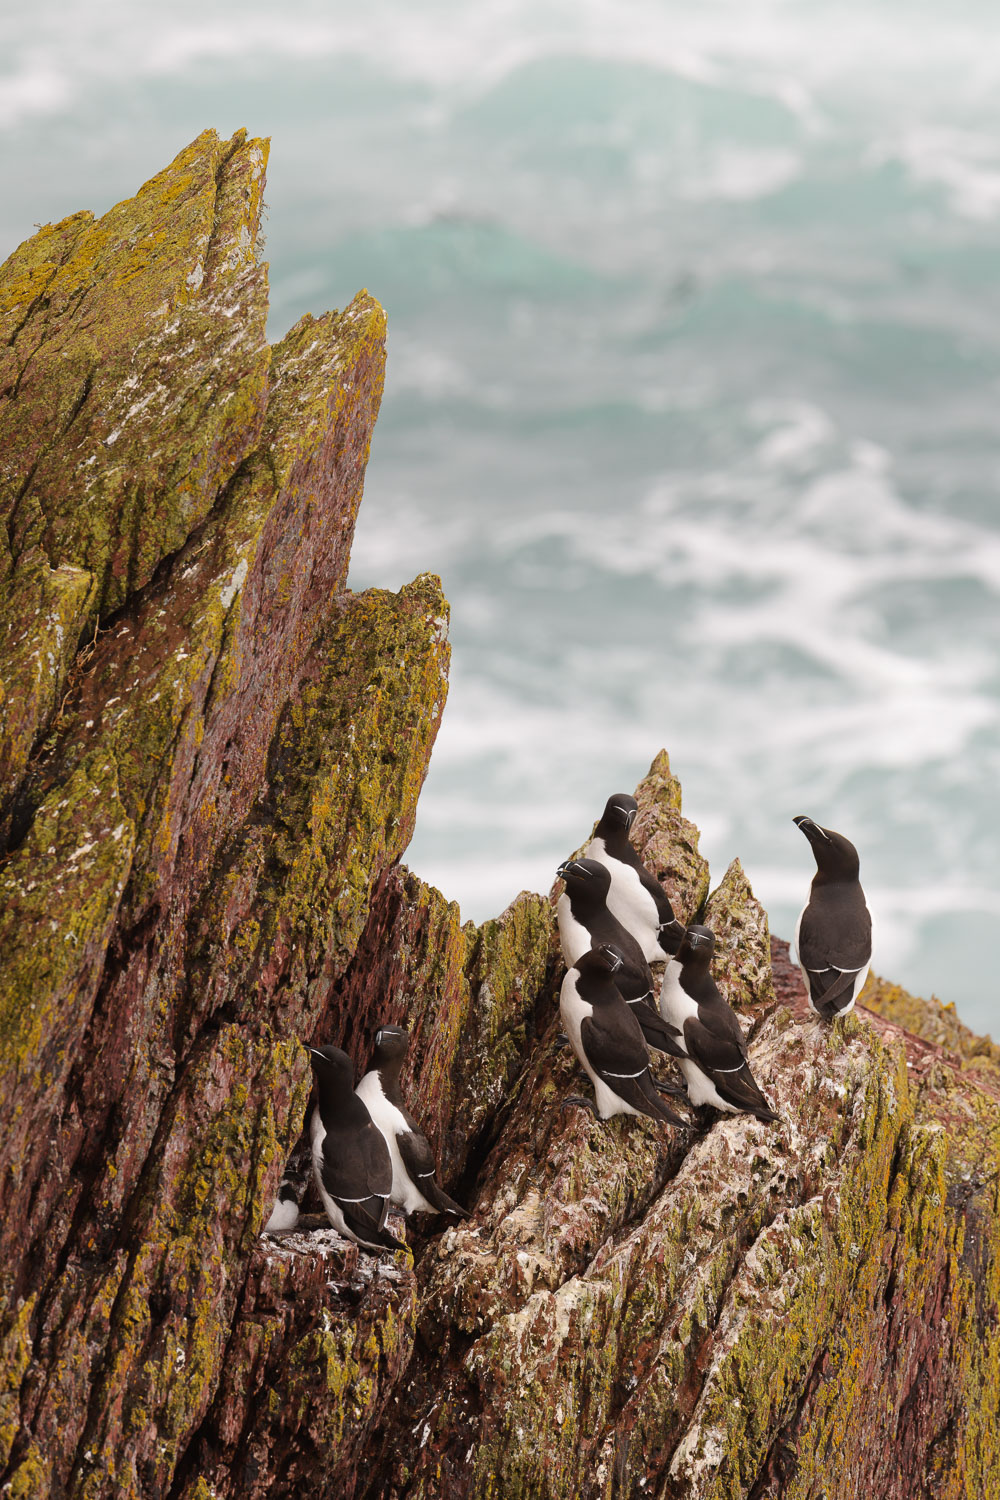 Razorbills Nesting on Sea Cliffs